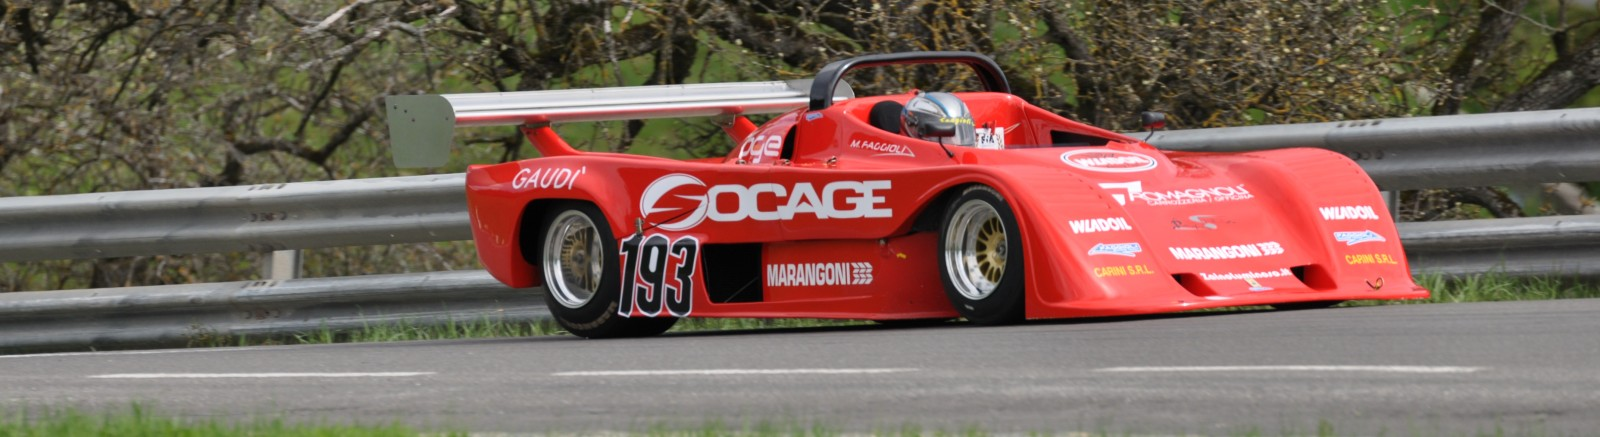 fia_historic_hill_climb